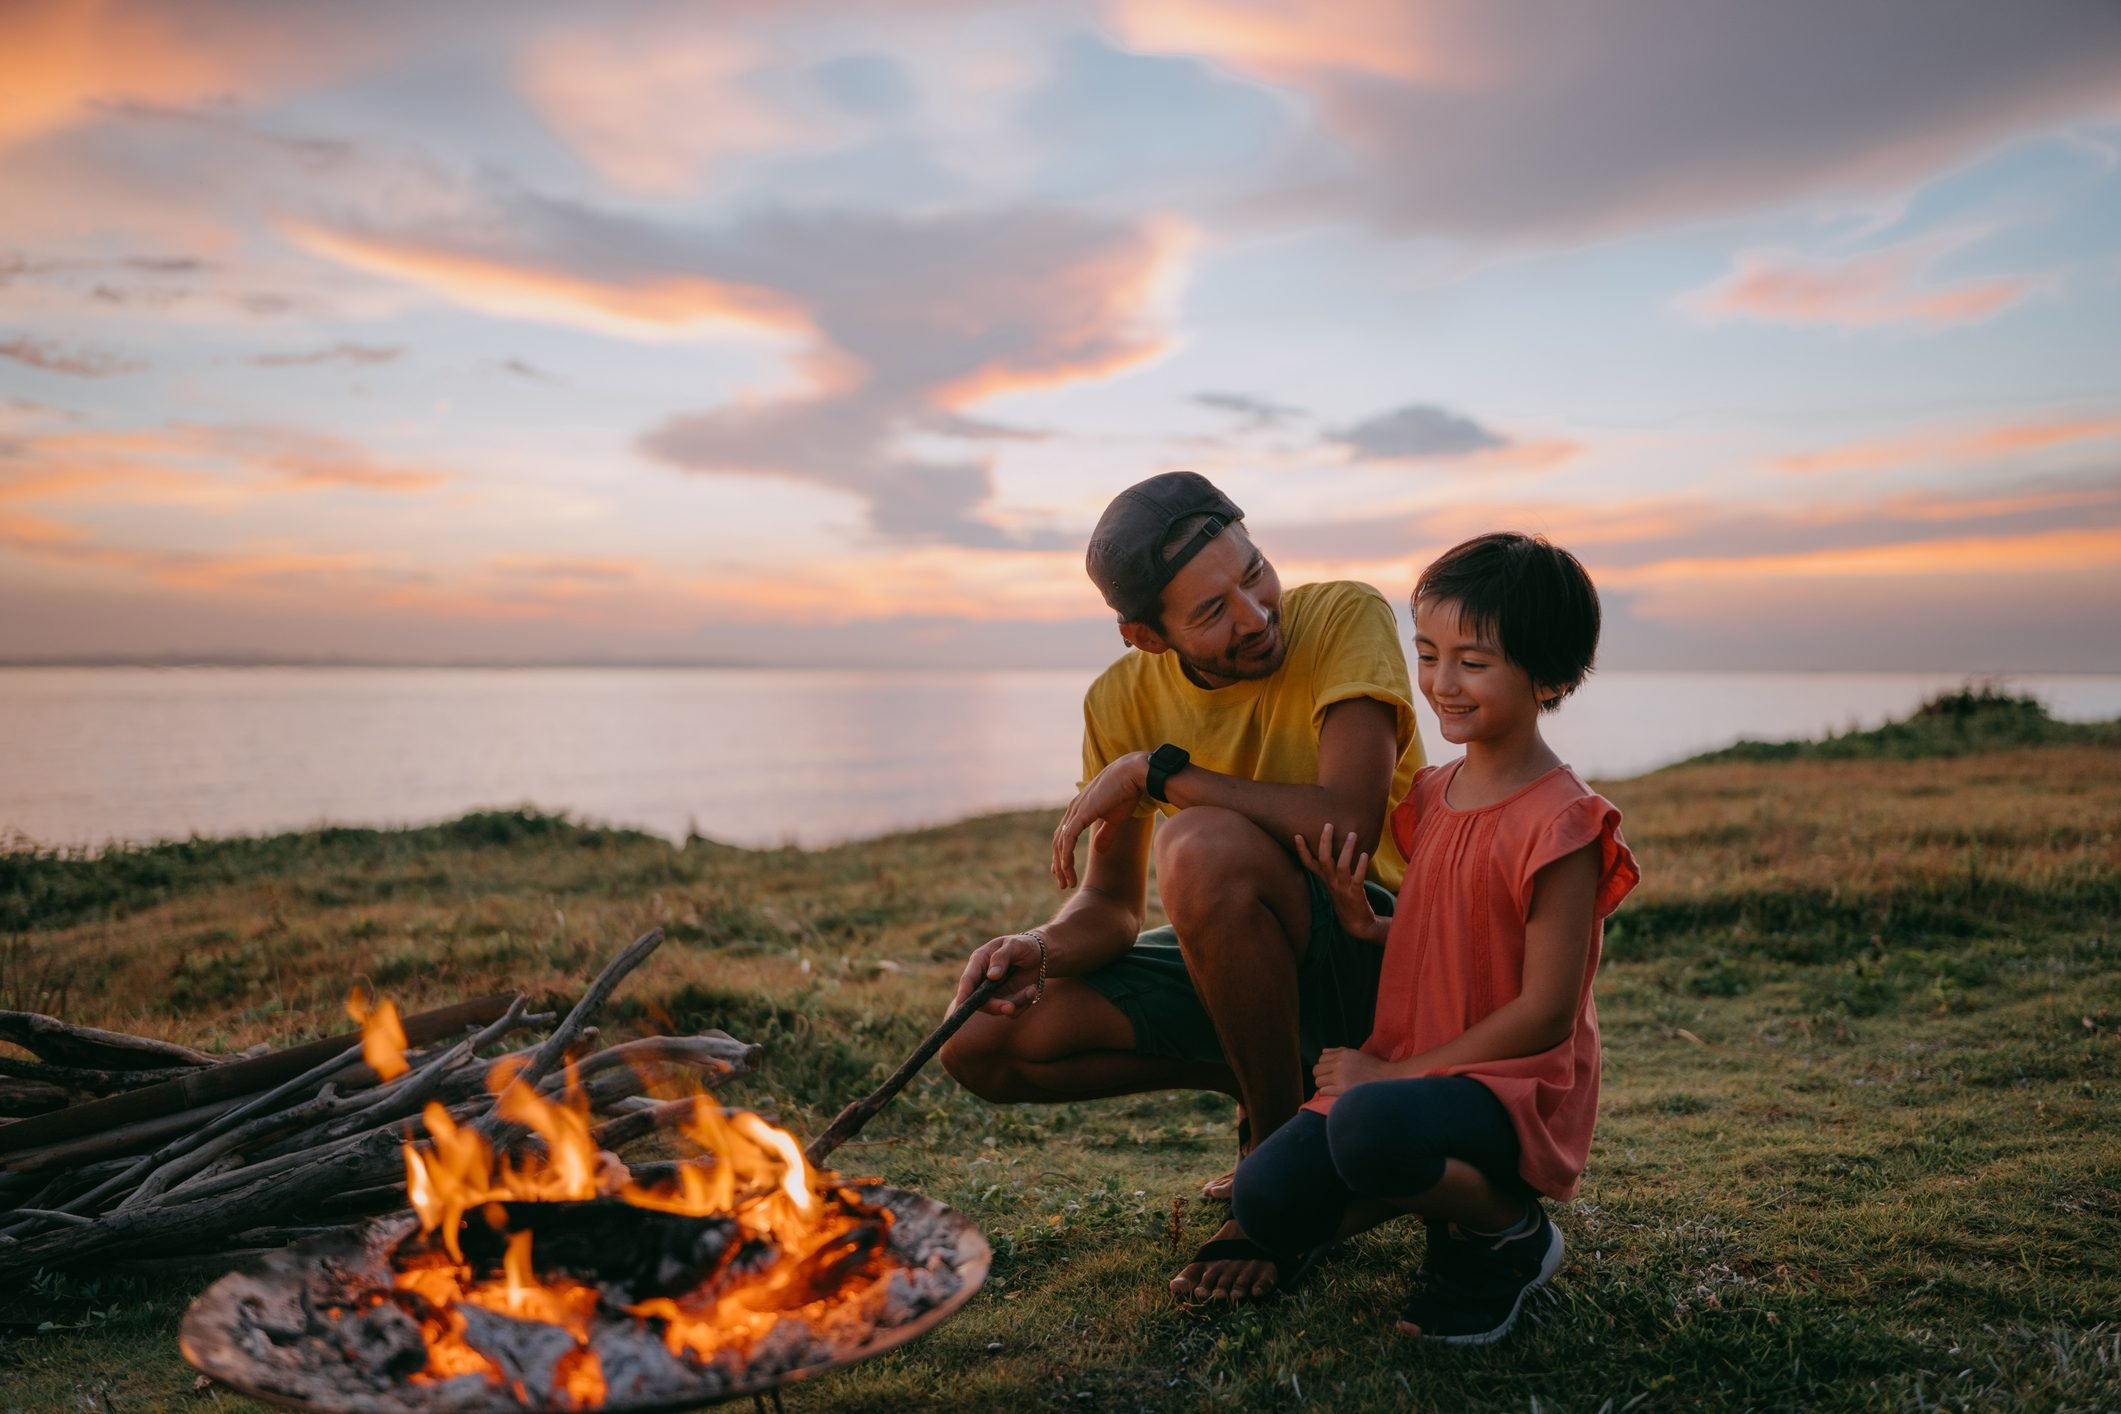 Father and daughter enjoying campfire at seaside campsite at sunset